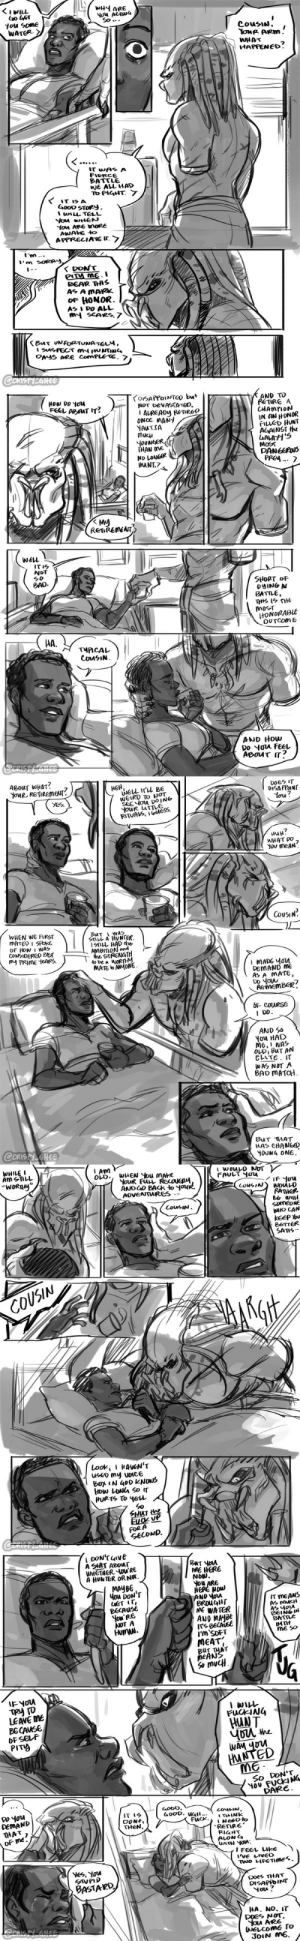 "crispy-ghee:  Mass Effect/Predator AU - RetirementThe Reaper War has ended. Shepard wakes up after a 2 month coma to find Cousin there ready to greet her. But something is off…I was asked a while ago what a ""survive"" ending would be between these two, if both Shepard and Cousin managed to come out of the end of the war alive… I have some thoughts on that, but the 'immediate' aftermath wouldn't leave me, so I had to draw it. I don't often draw these two being mushy. So enjoy it, I guess. : crispy-ghee:  Mass Effect/Predator AU - RetirementThe Reaper War has ended. Shepard wakes up after a 2 month coma to find Cousin there ready to greet her. But something is off…I was asked a while ago what a ""survive"" ending would be between these two, if both Shepard and Cousin managed to come out of the end of the war alive… I have some thoughts on that, but the 'immediate' aftermath wouldn't leave me, so I had to draw it. I don't often draw these two being mushy. So enjoy it, I guess."